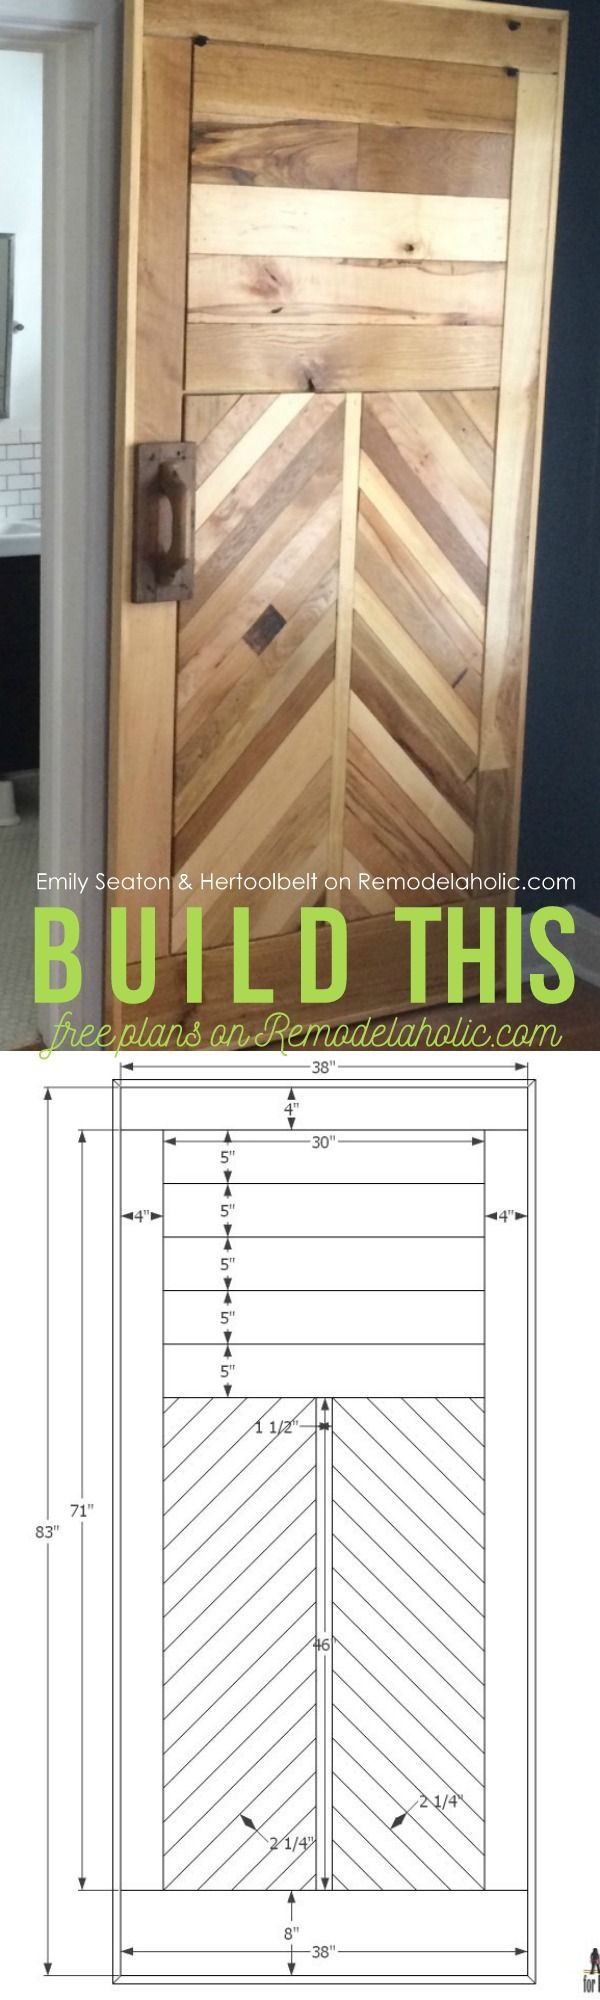 Free Reclaimed Wood Chevron Barn Door Building Plan and Tutorial on @Remodelaholic